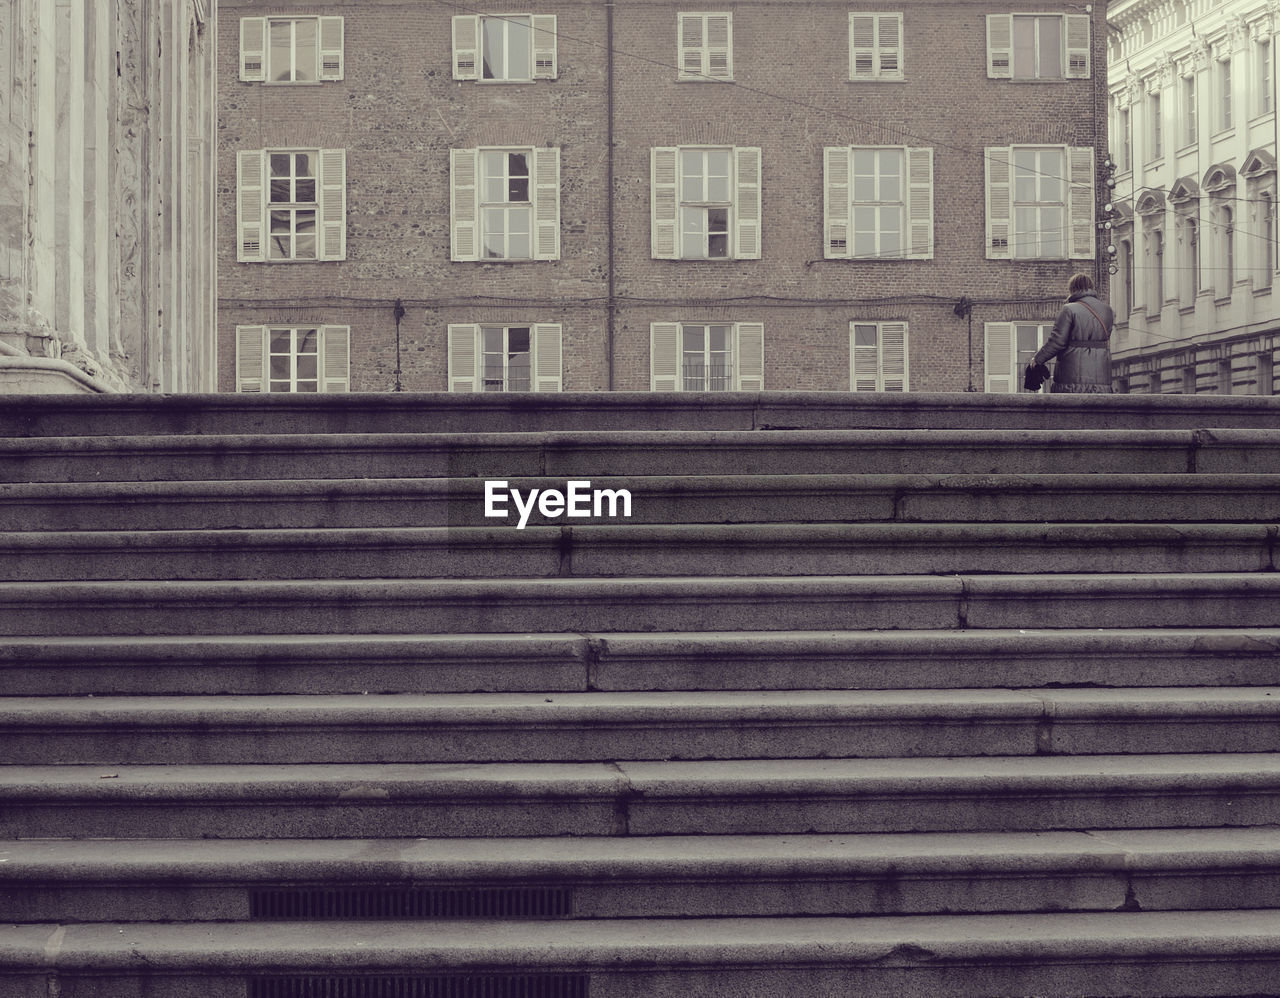 architecture, built structure, staircase, building exterior, real people, window, one person, steps and staircases, men, low angle view, day, lifestyles, full length, walking, building, city, outdoors, pattern, moving up